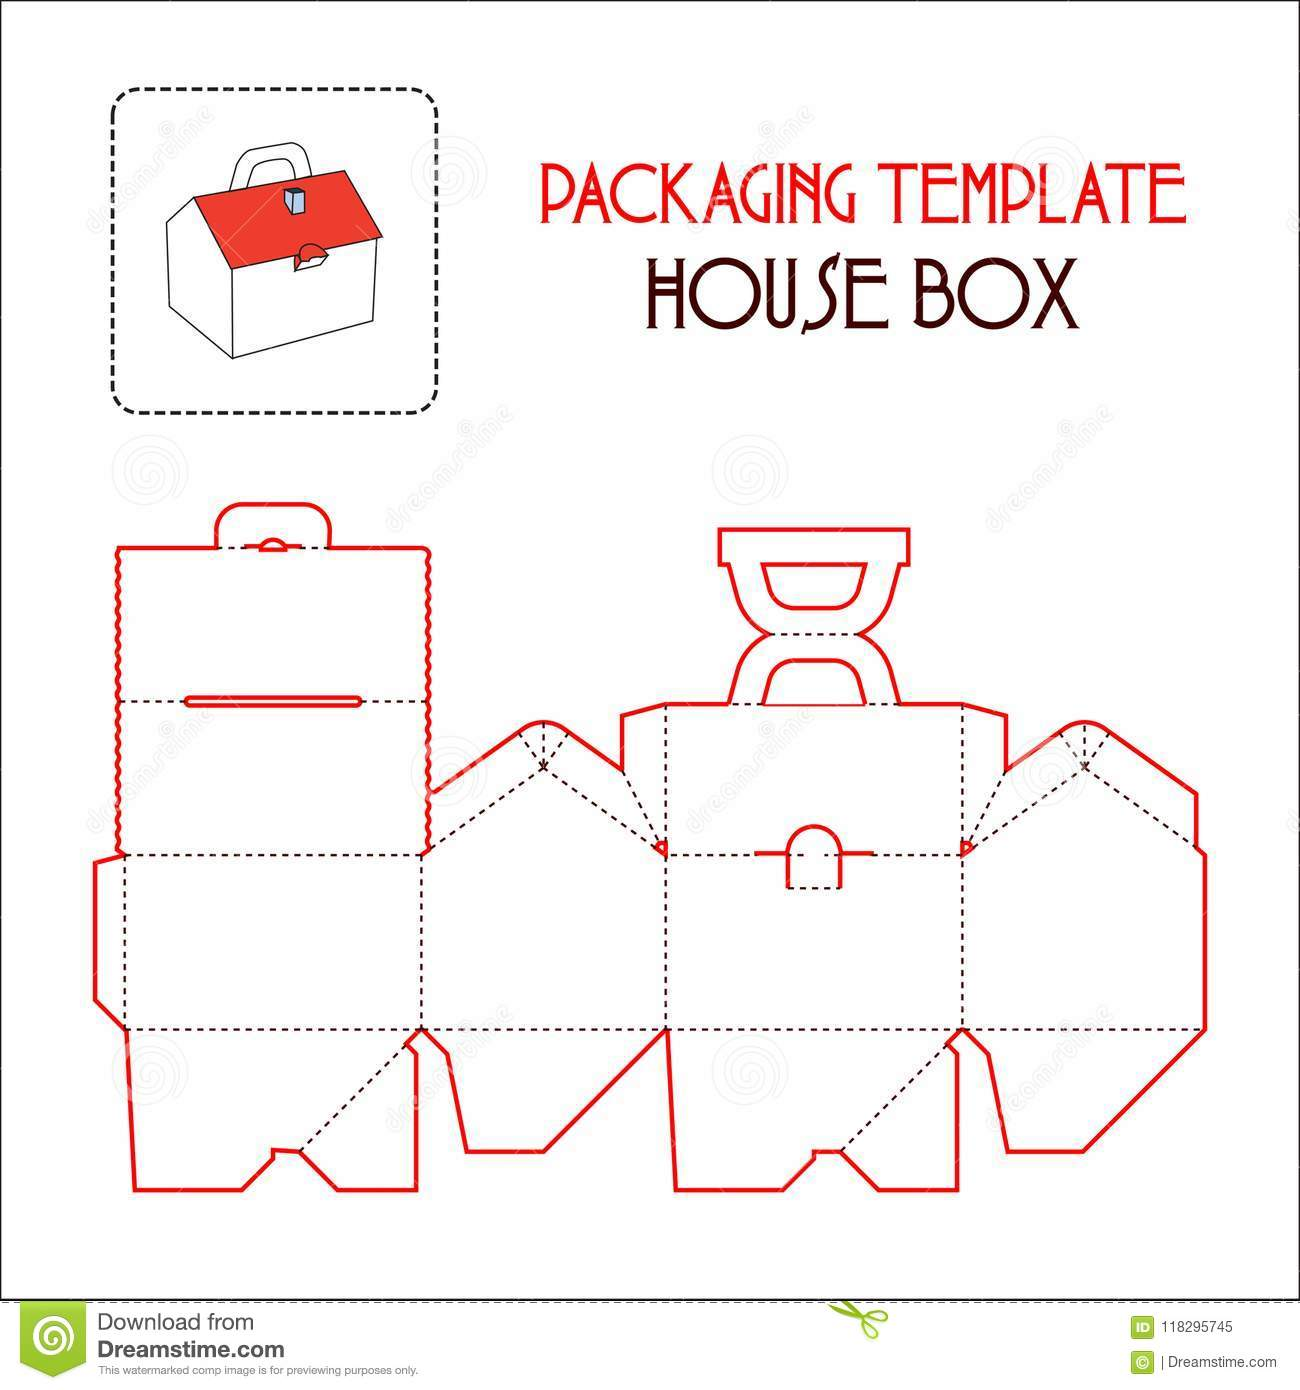 house box packaging template stock vector illustration of trophy